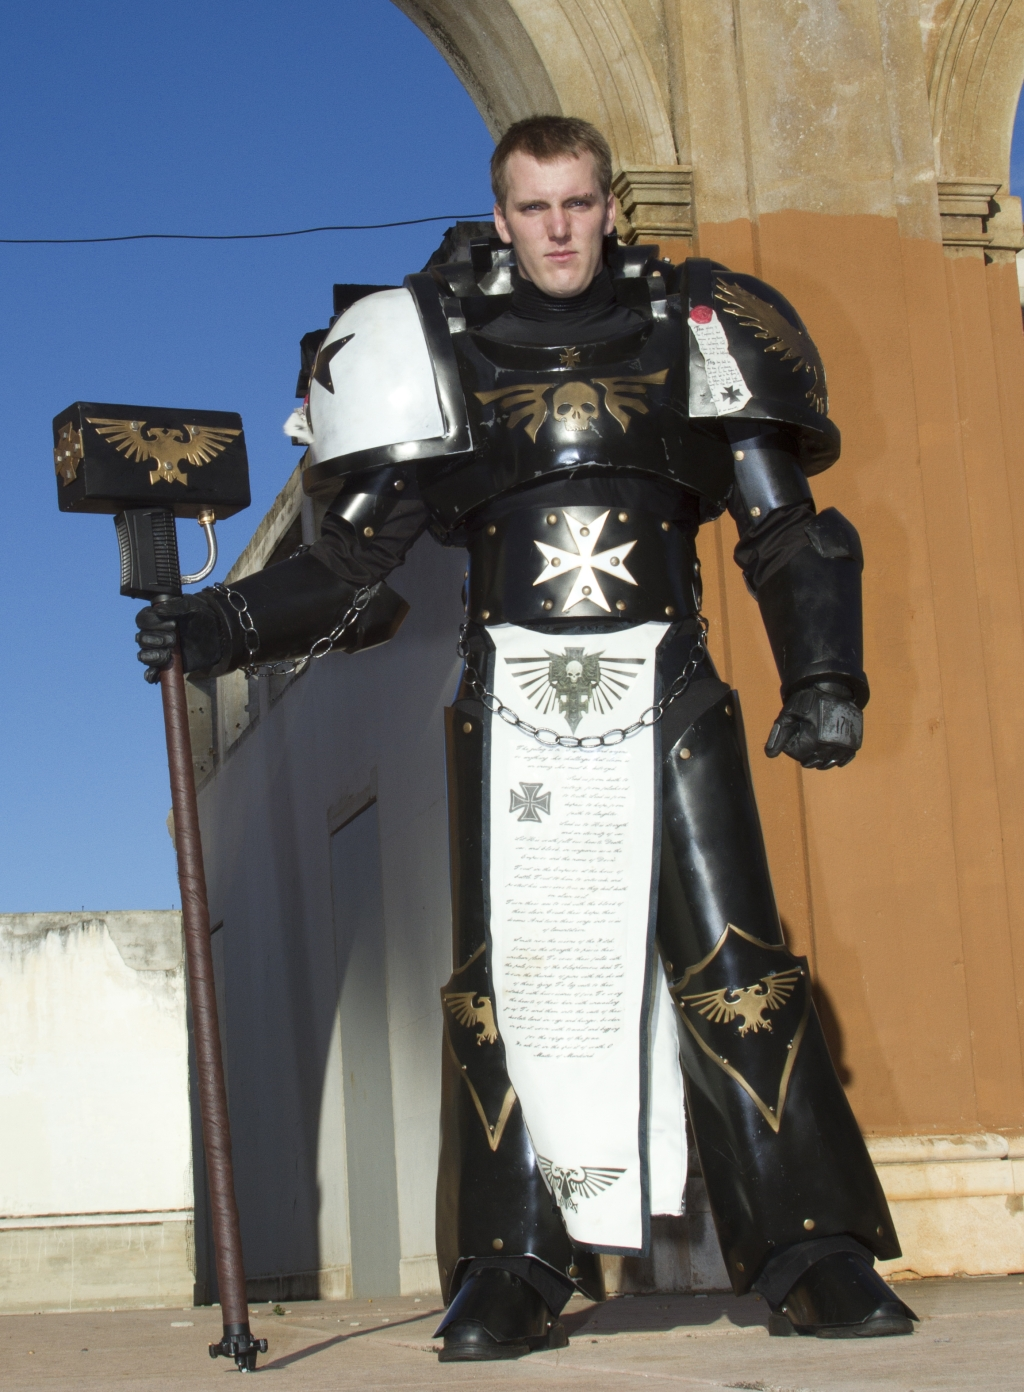 Not technically a space marines costume but awesome and worth